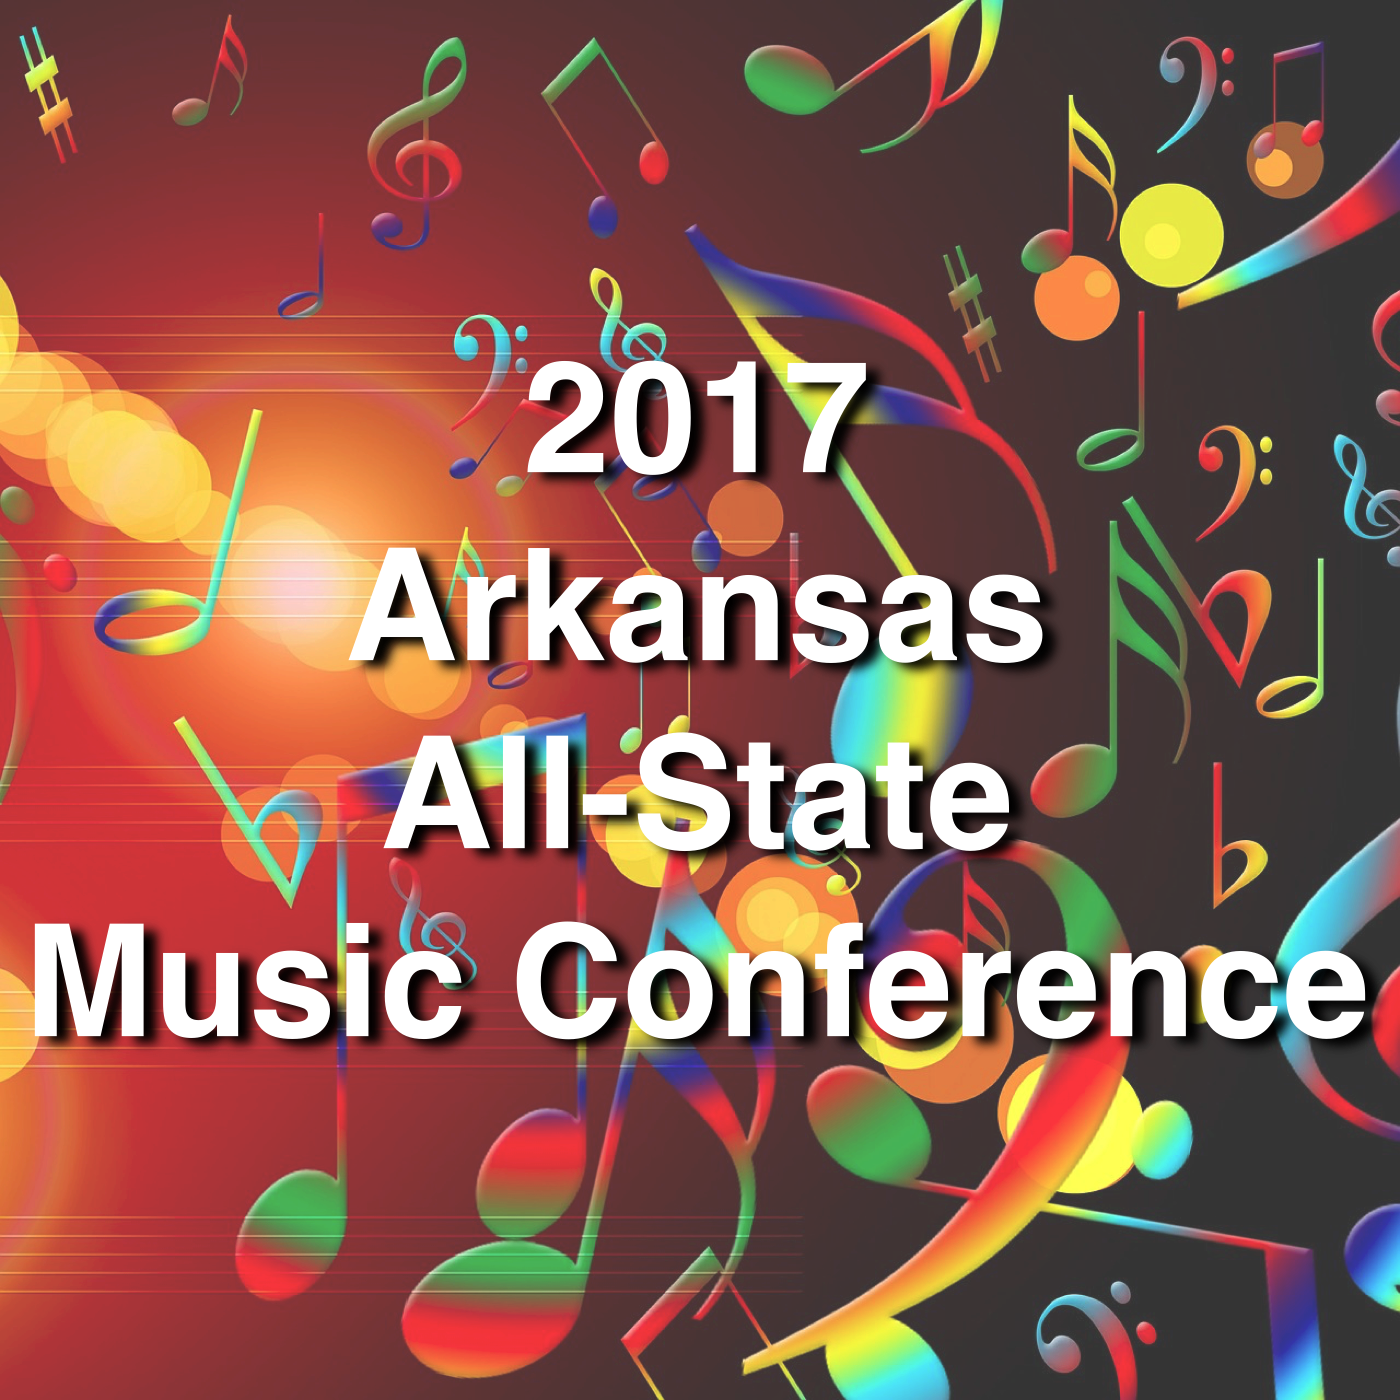 2017 Arkansas All-State Music Conference